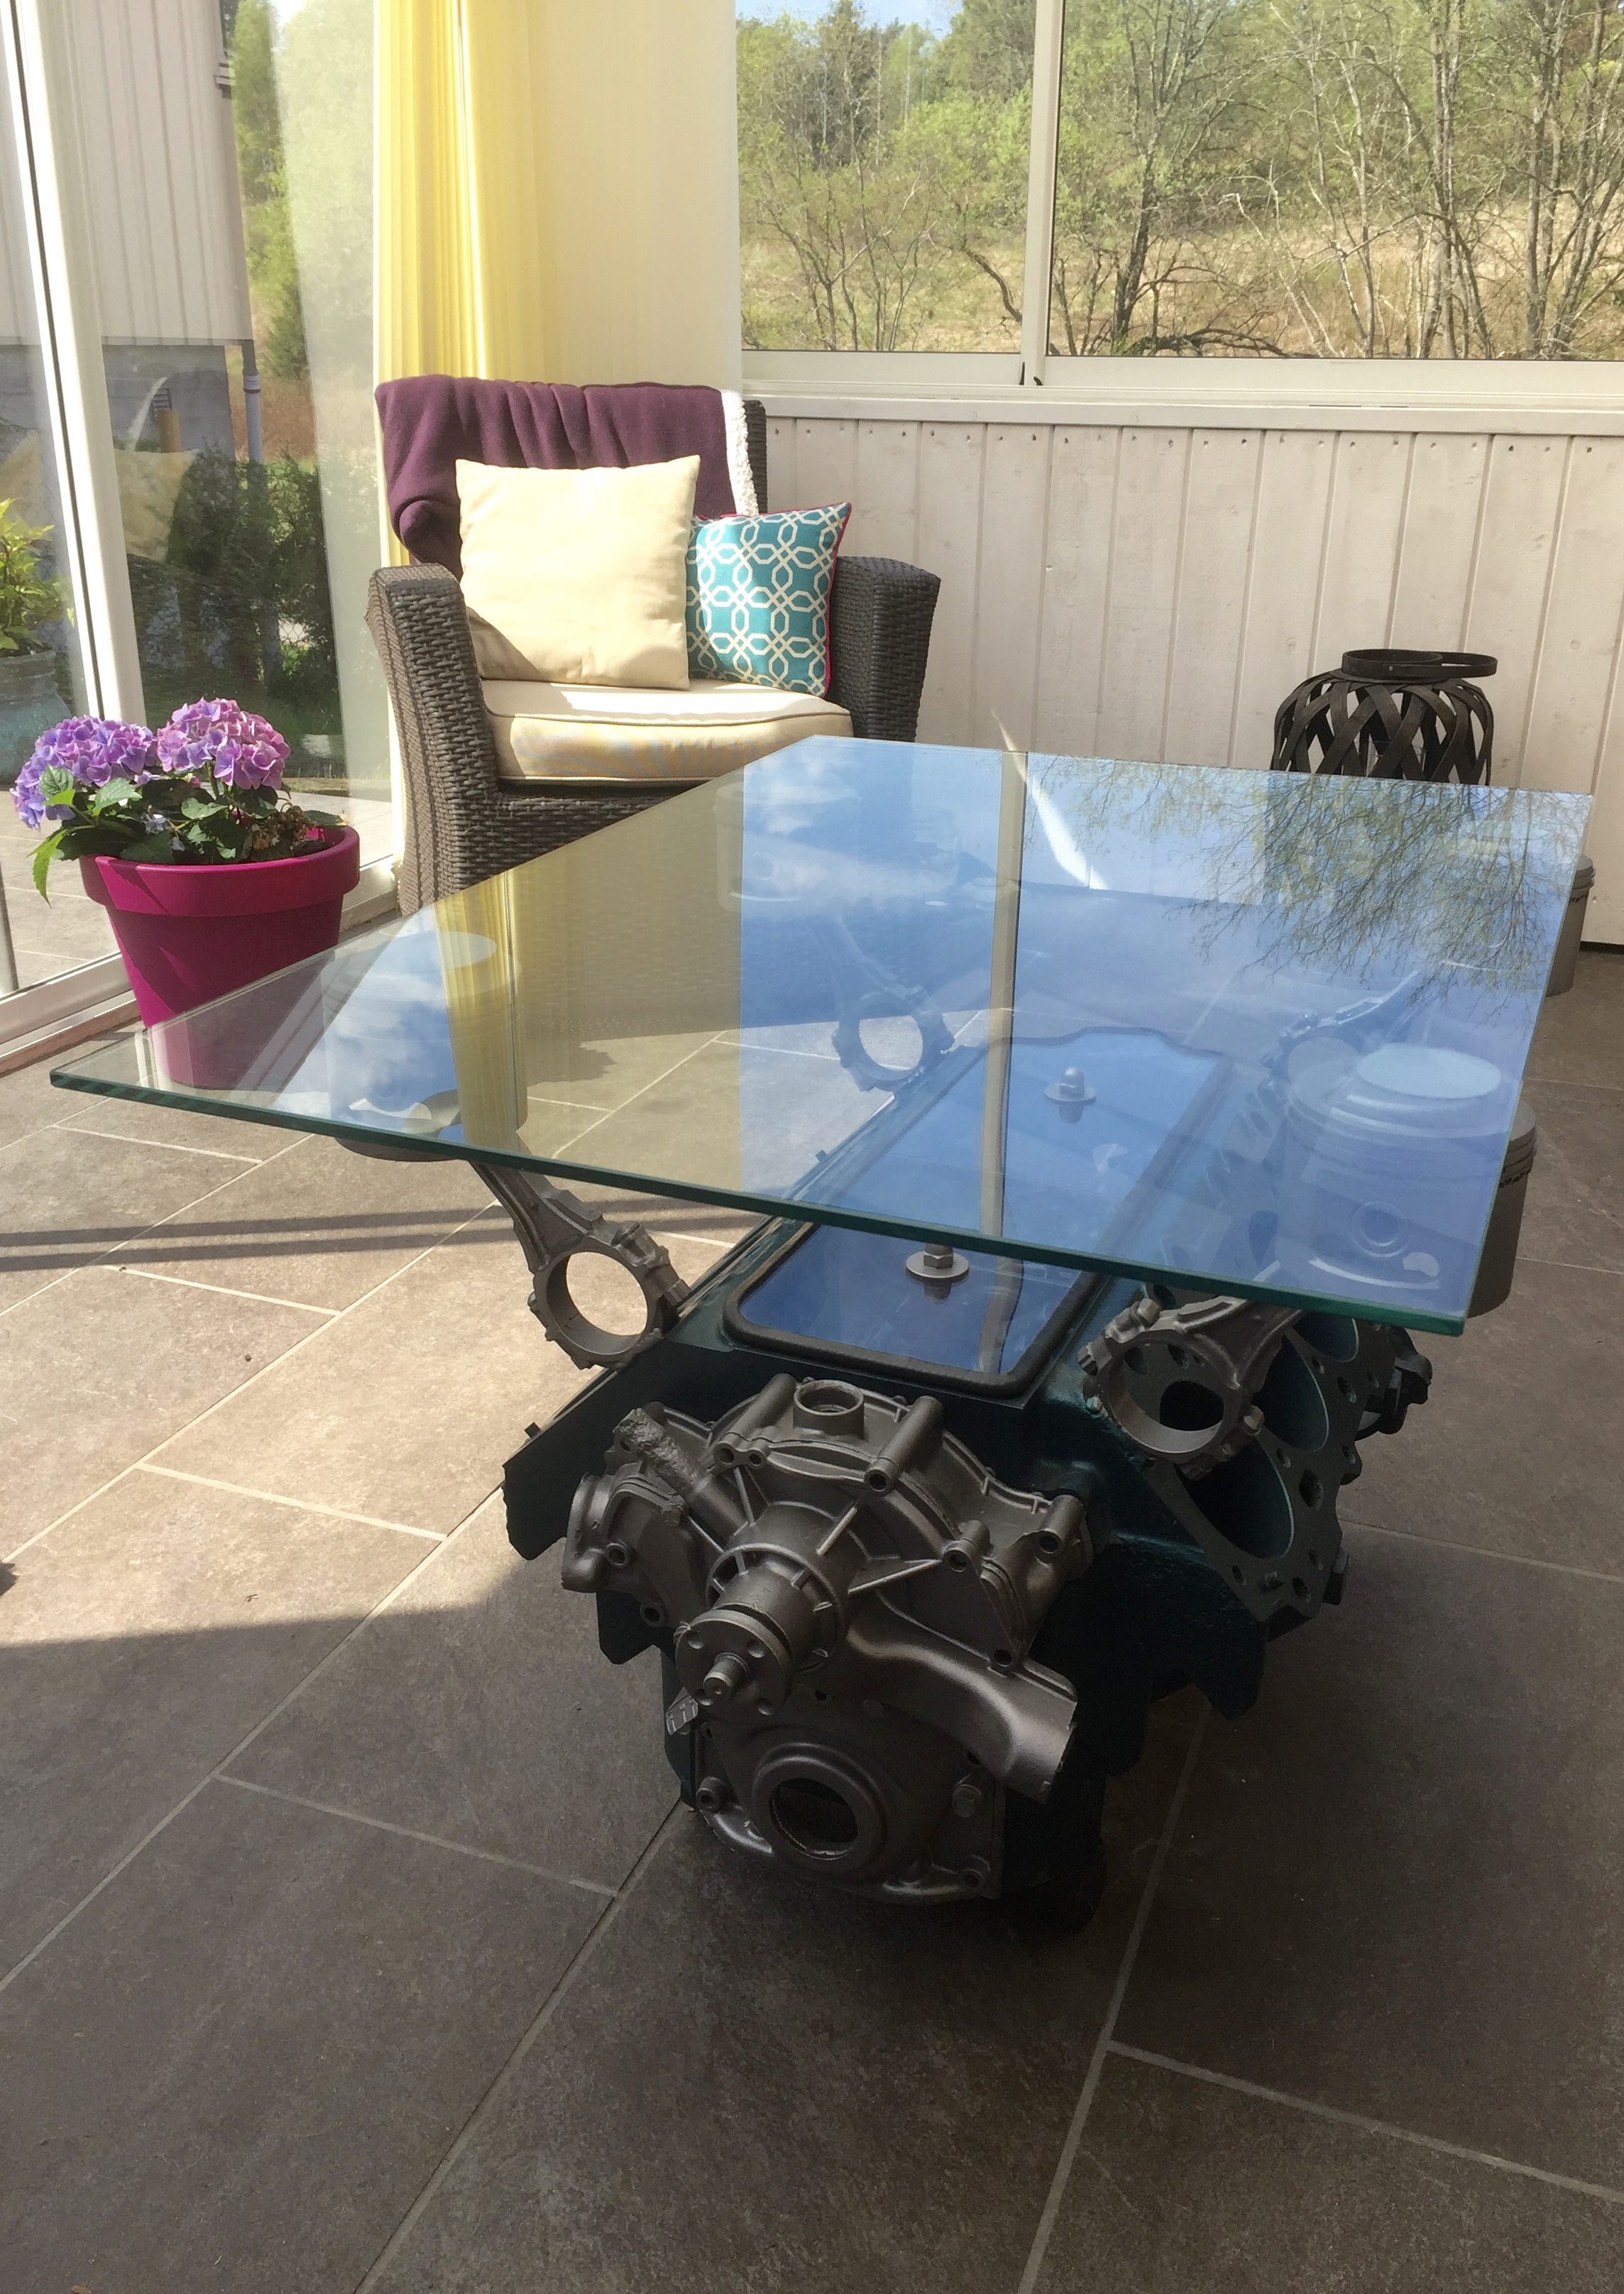 Table from an old V8 engine